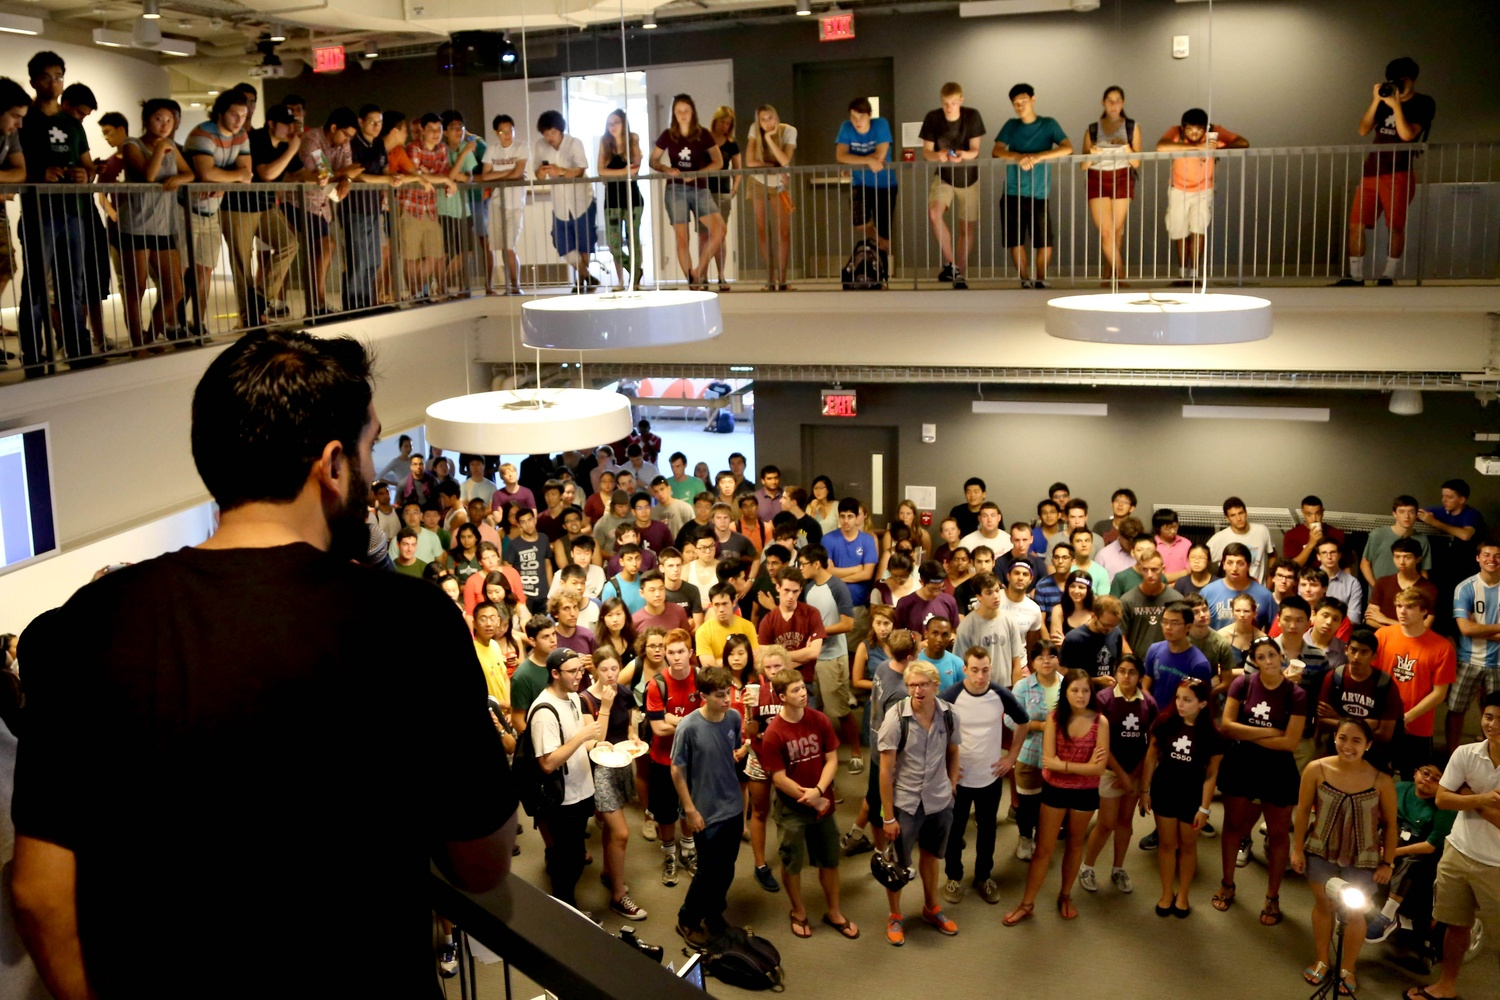 Mohammed N. Oosman, a university recruiter for Facebook, welcomes the crowd at CS50 Puzzle Day in 2014. The course, which many praise, has also been criticized for corporate sponsorship and its large, enthusiastic following.